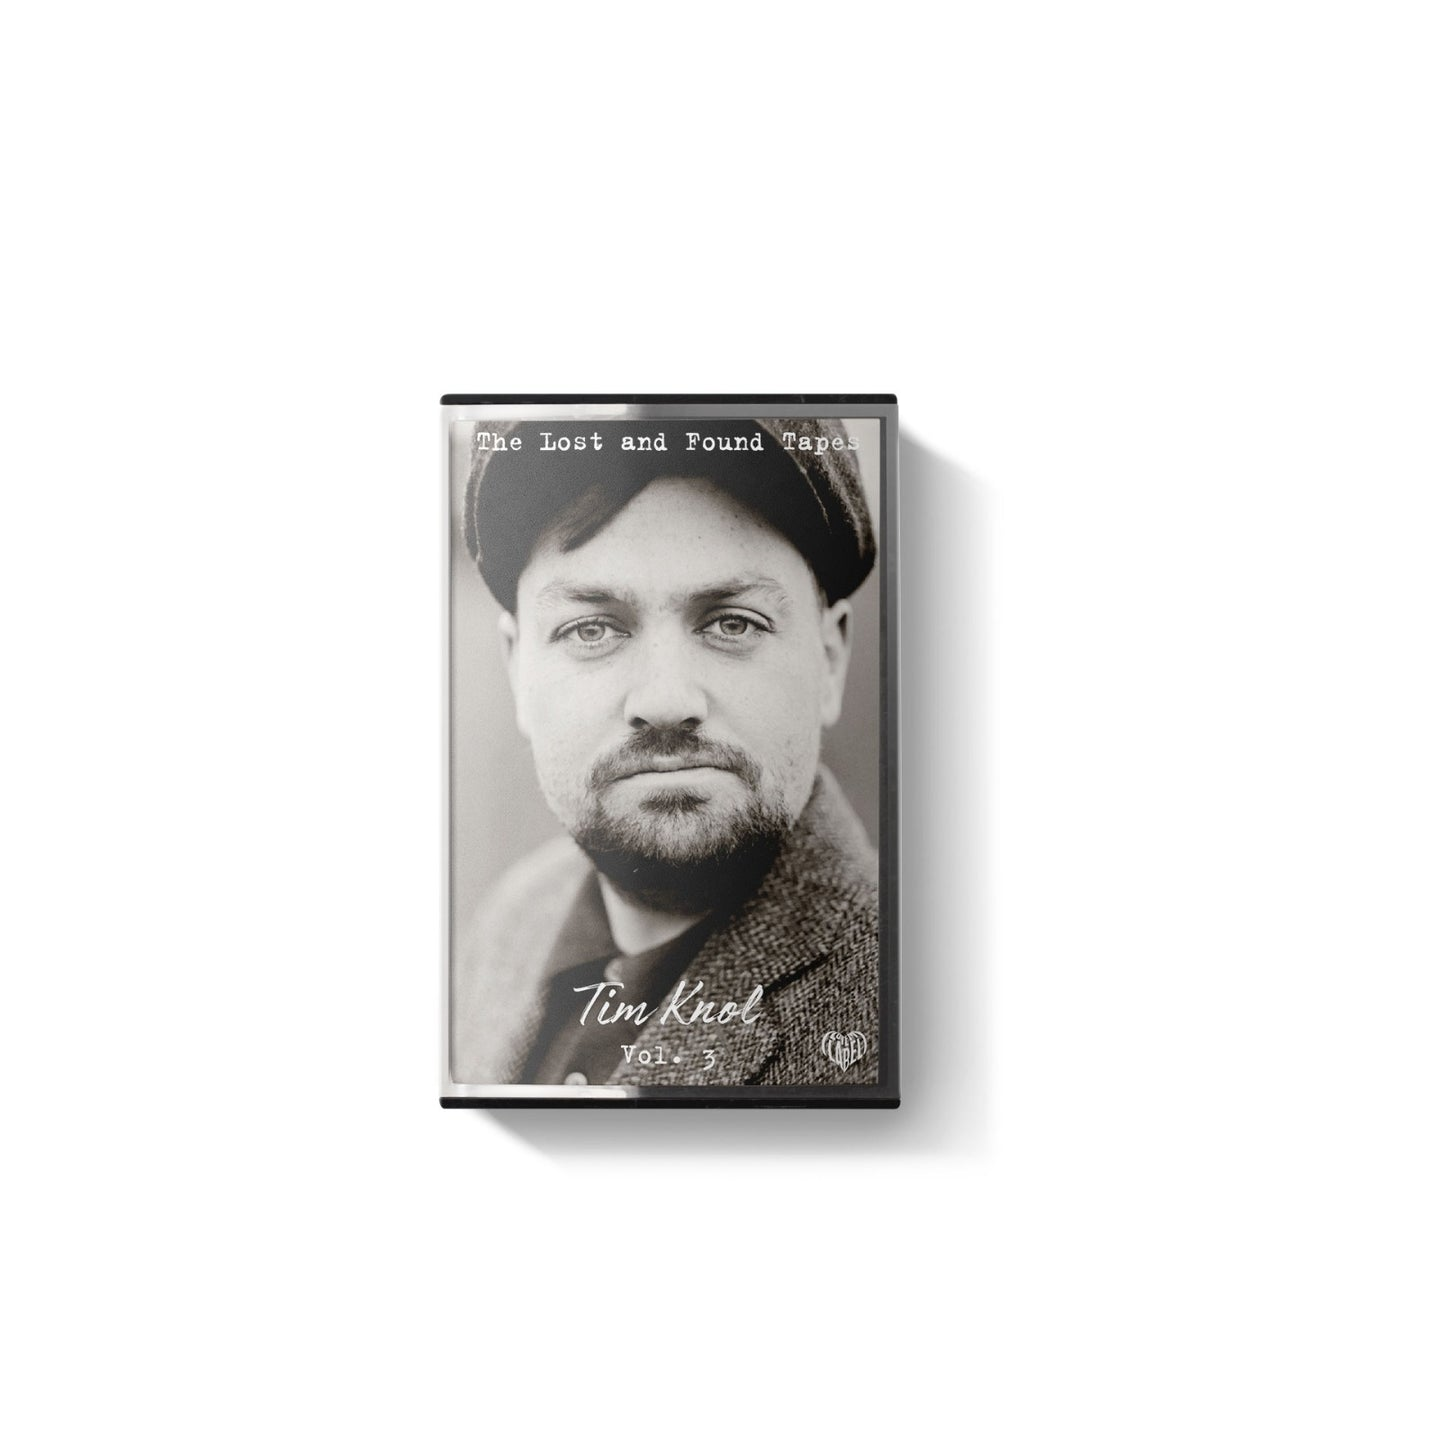 Tim Knol - The Lost and Found Tapes VOL. 3 CASSETTE